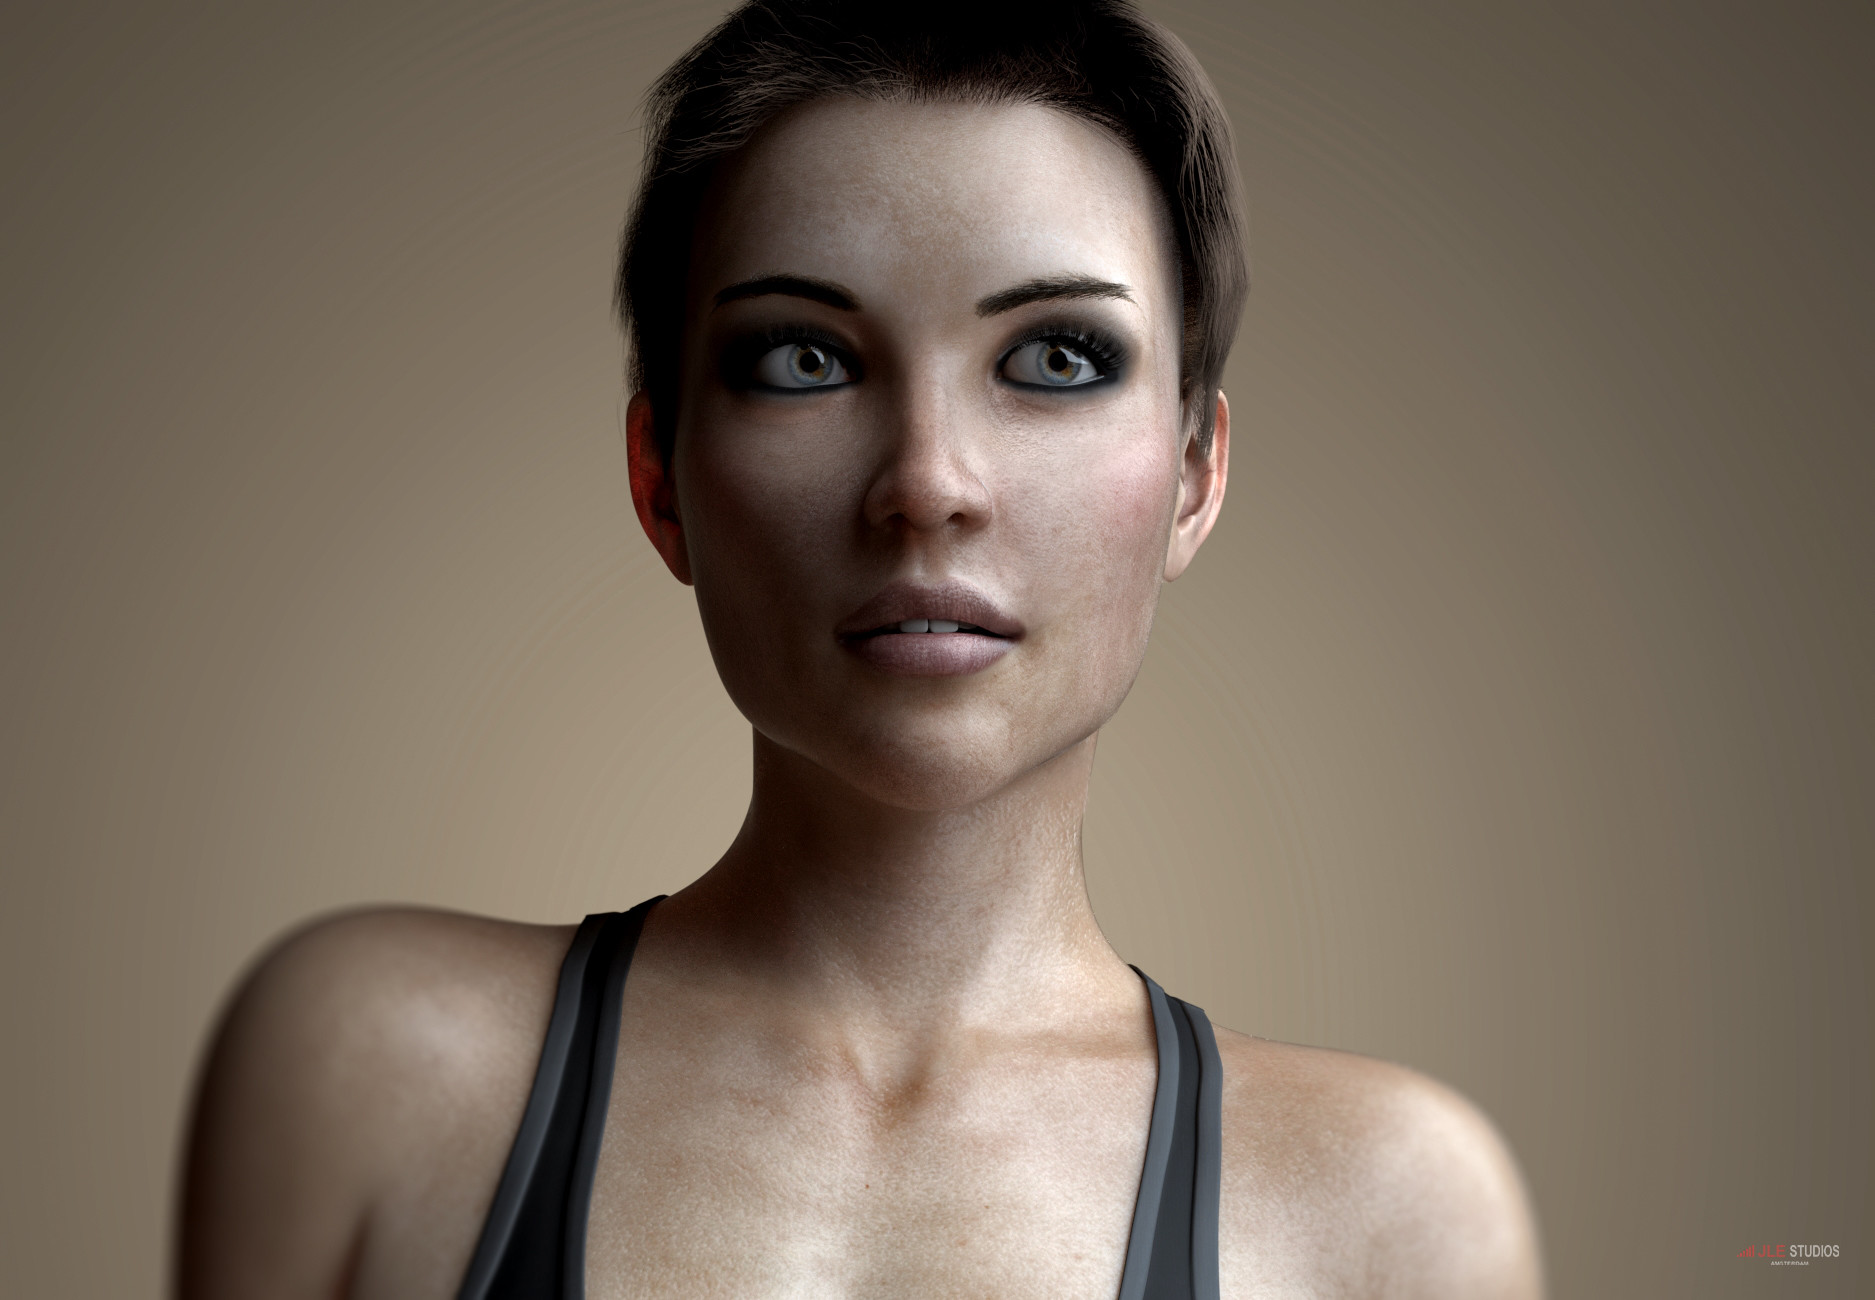 Which DAZ Genesis 3 M and F characters are the most realistic